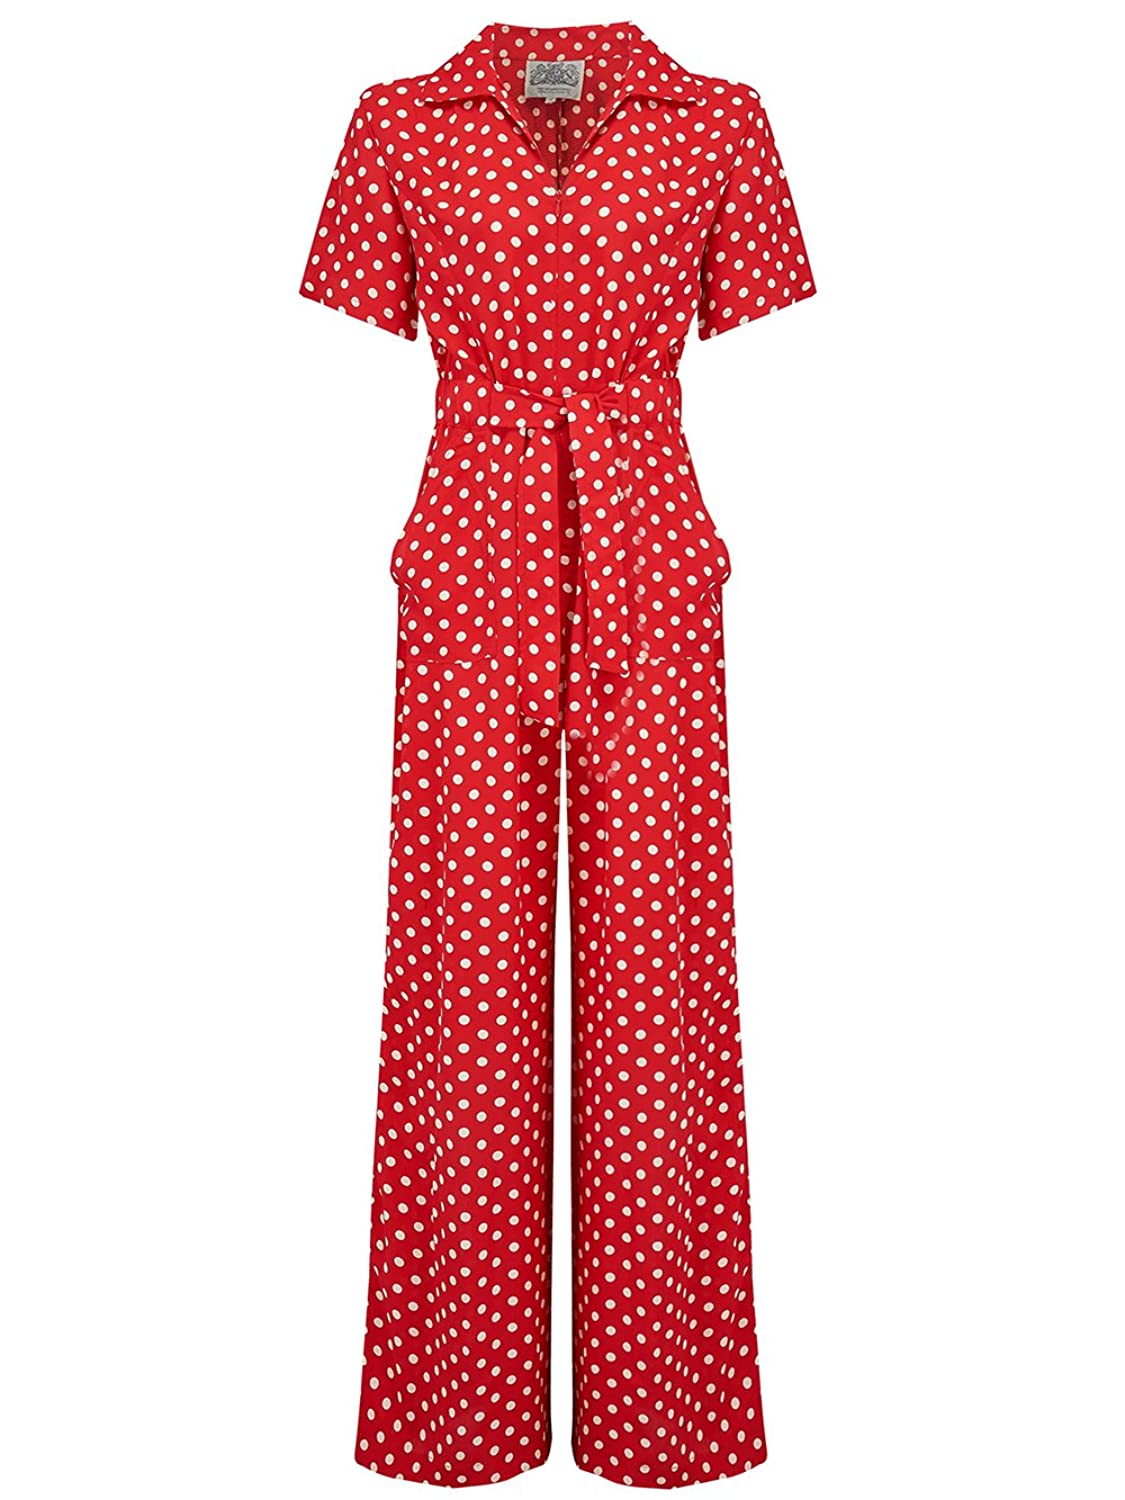 1940s Dresses and Clothing UK | 40s Shoes UK 1940s Vintage Inspired Lauren jumpsuit in Red Spot by The Seamstress of Bloomsbury £89.00 AT vintagedancer.com